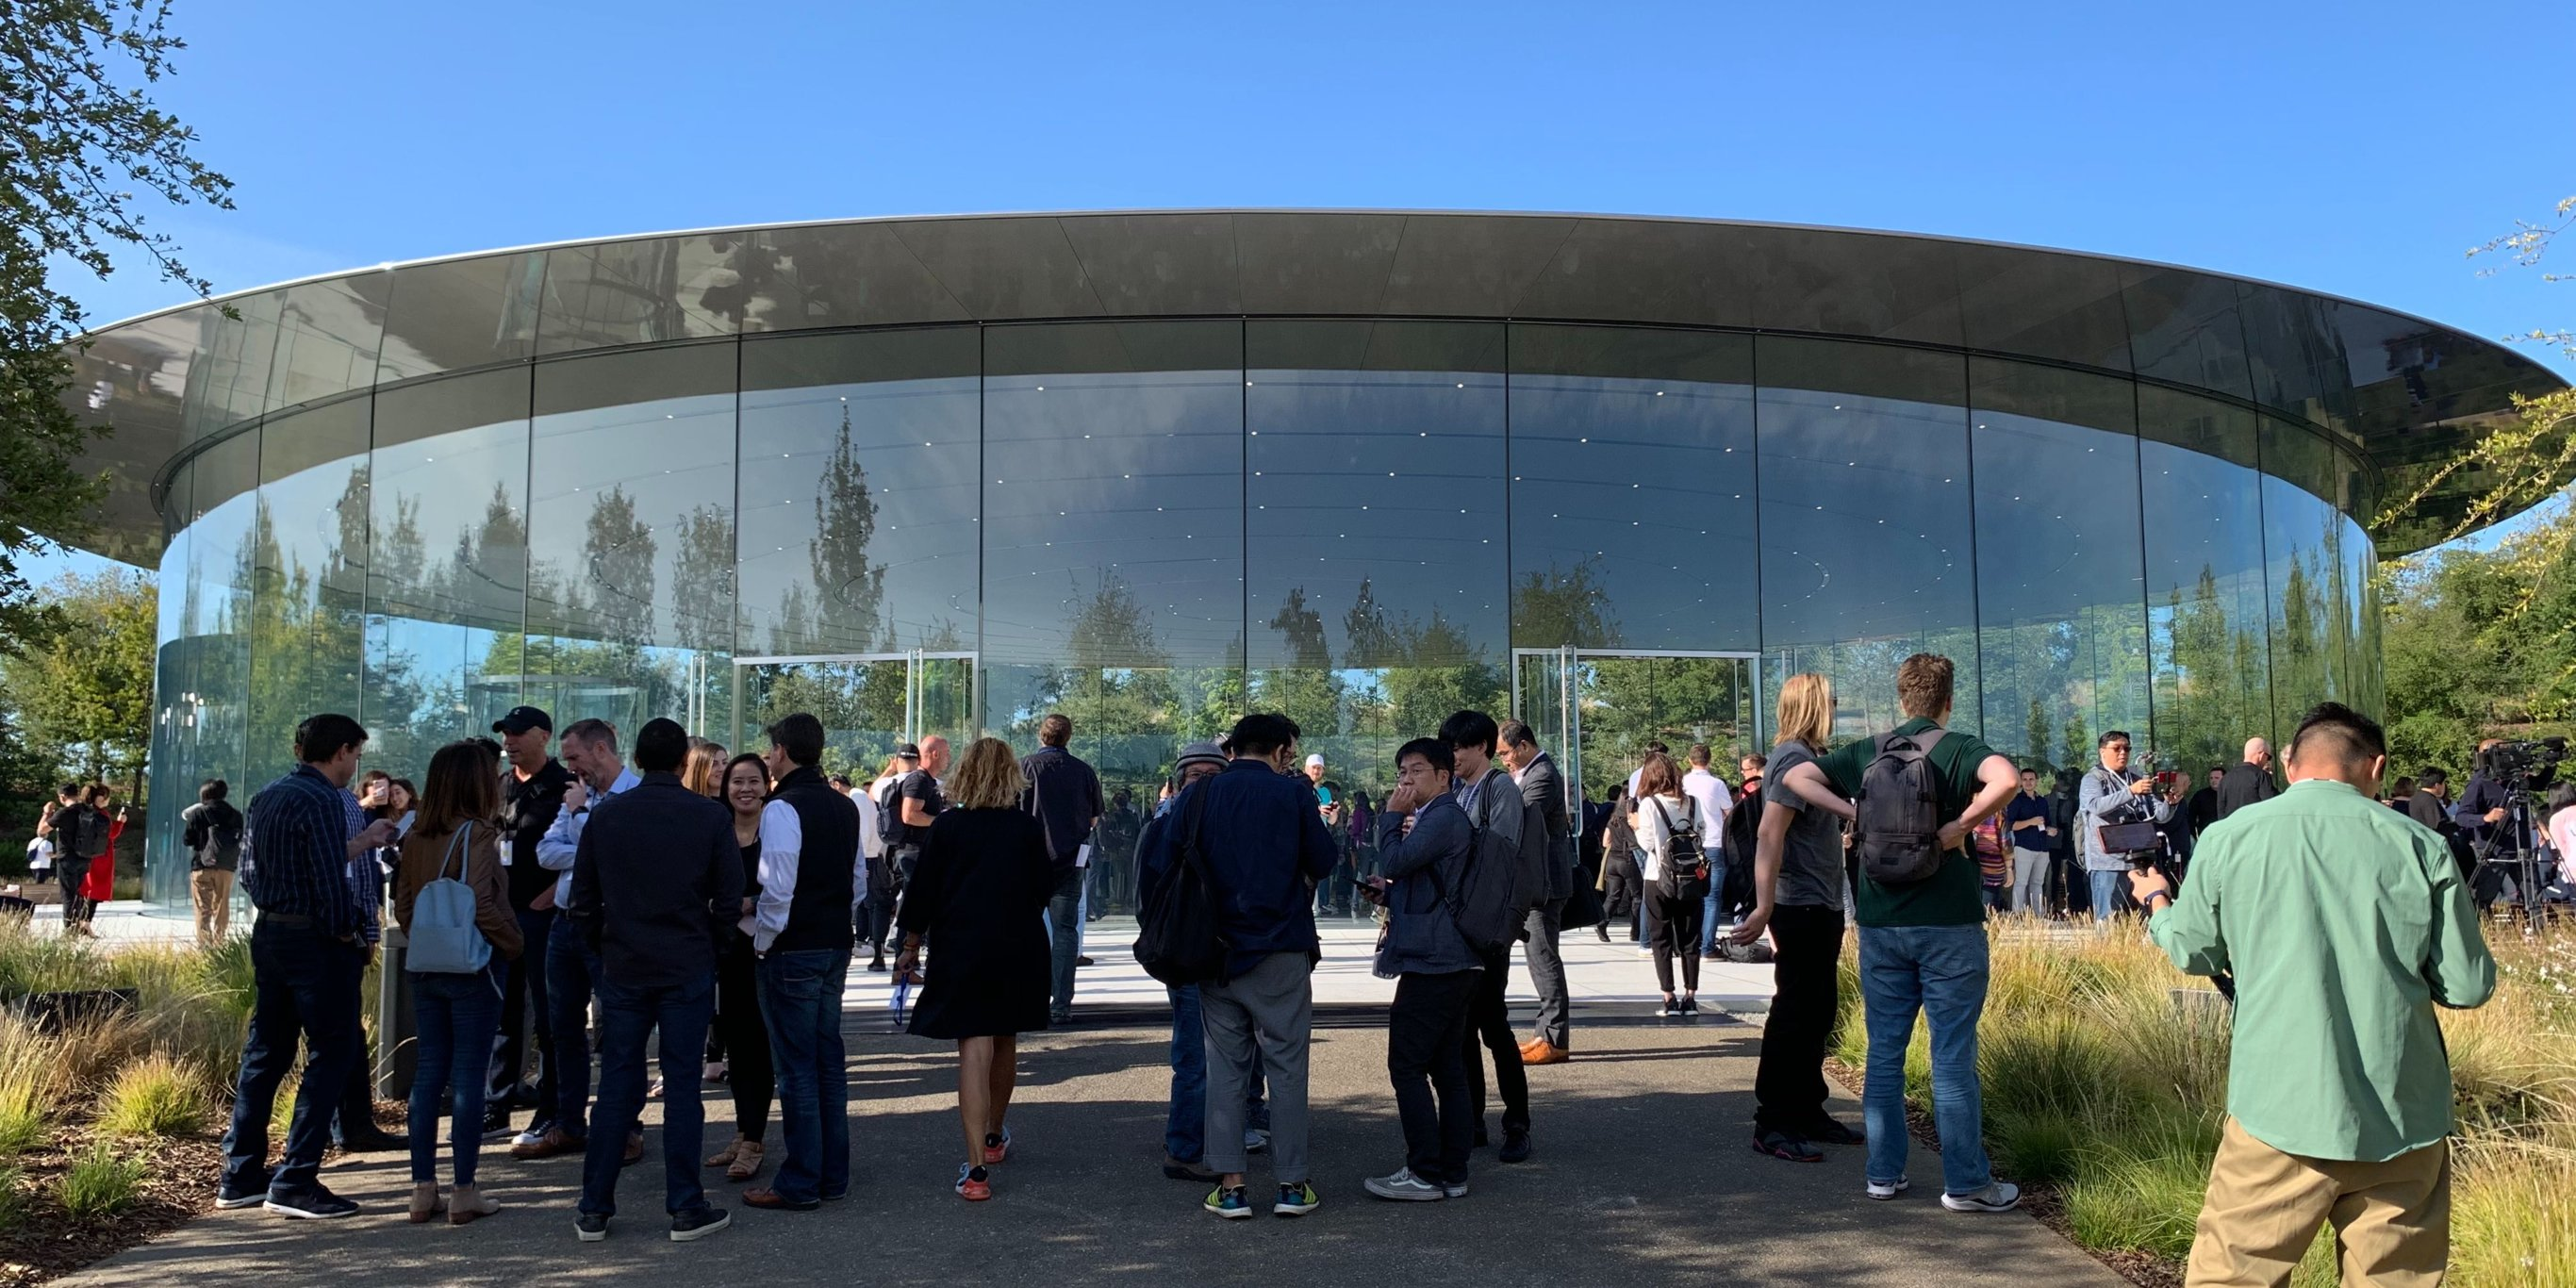 LIVE: Apple is minutes away from announcing new iPhones at its biggest event of the year (AAPL)